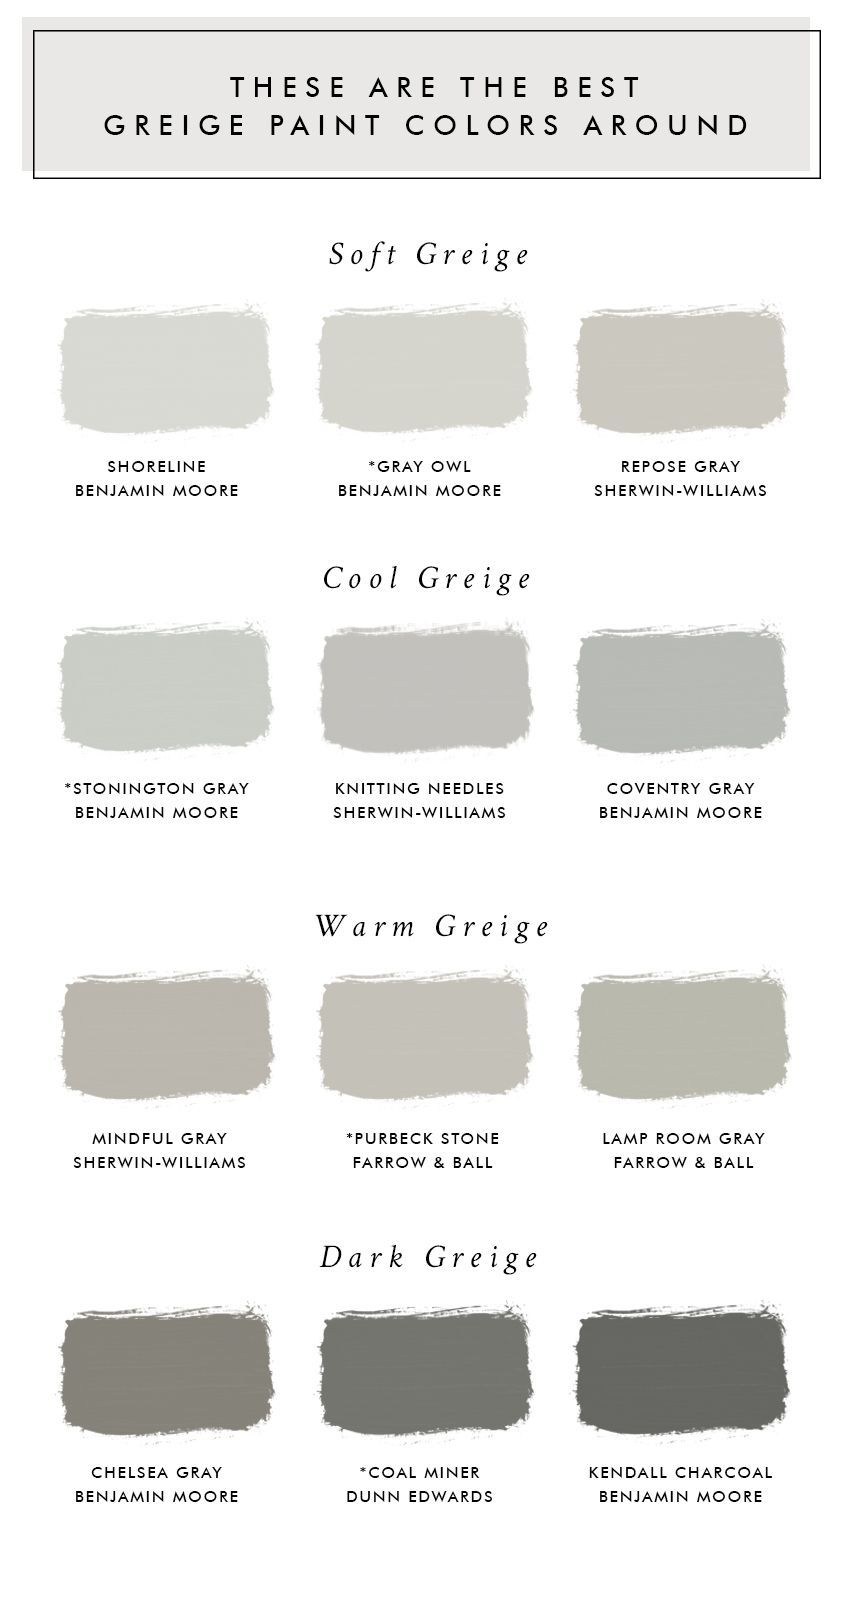 These Are The Best Greige Paint Colors Around images